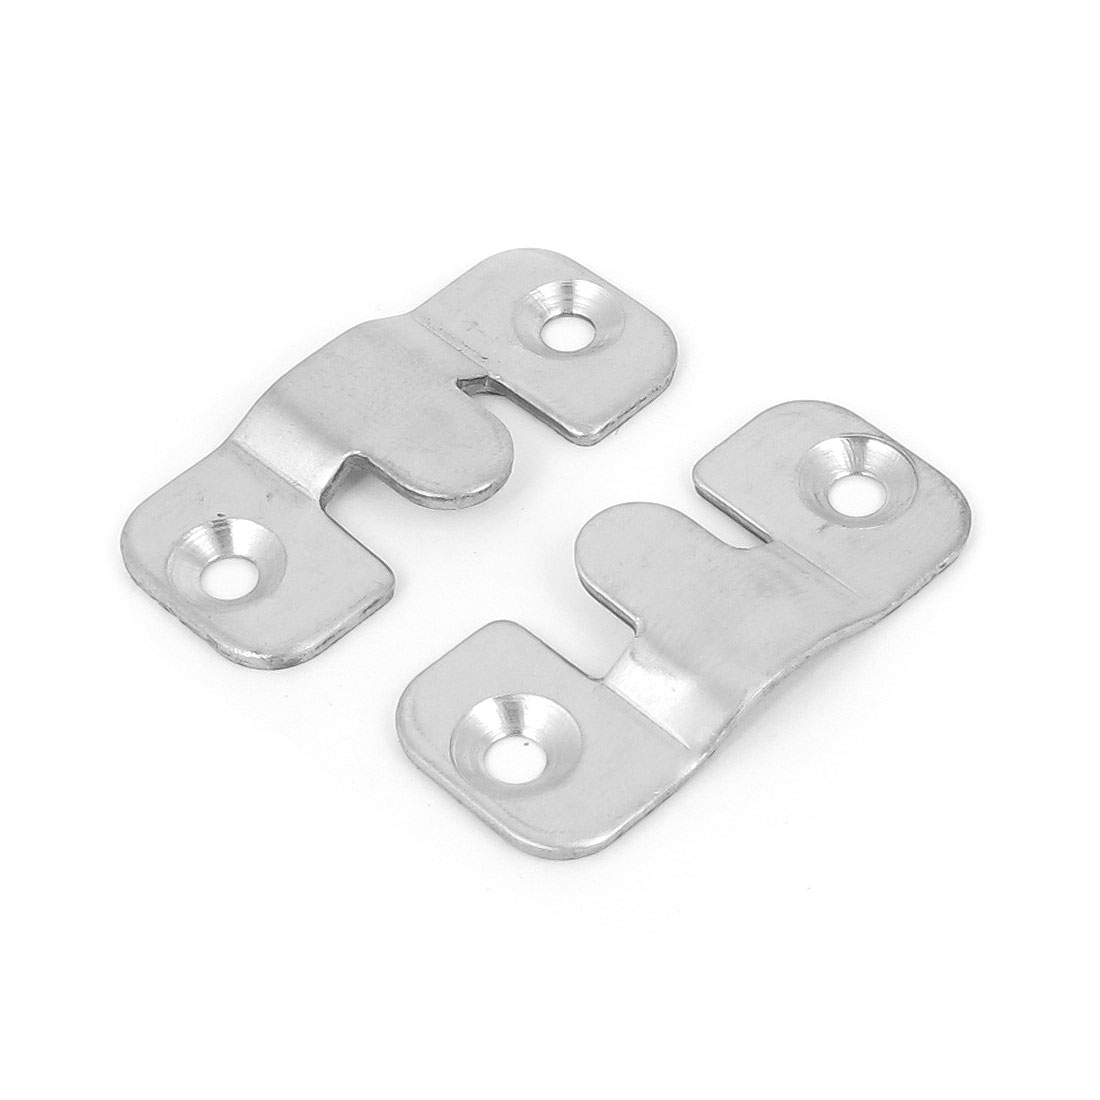 2pcs 43mm x 18mm Silver Tone Stainless Steel Wall Mounted Photo Frame Hanging Hanger Hook Plates